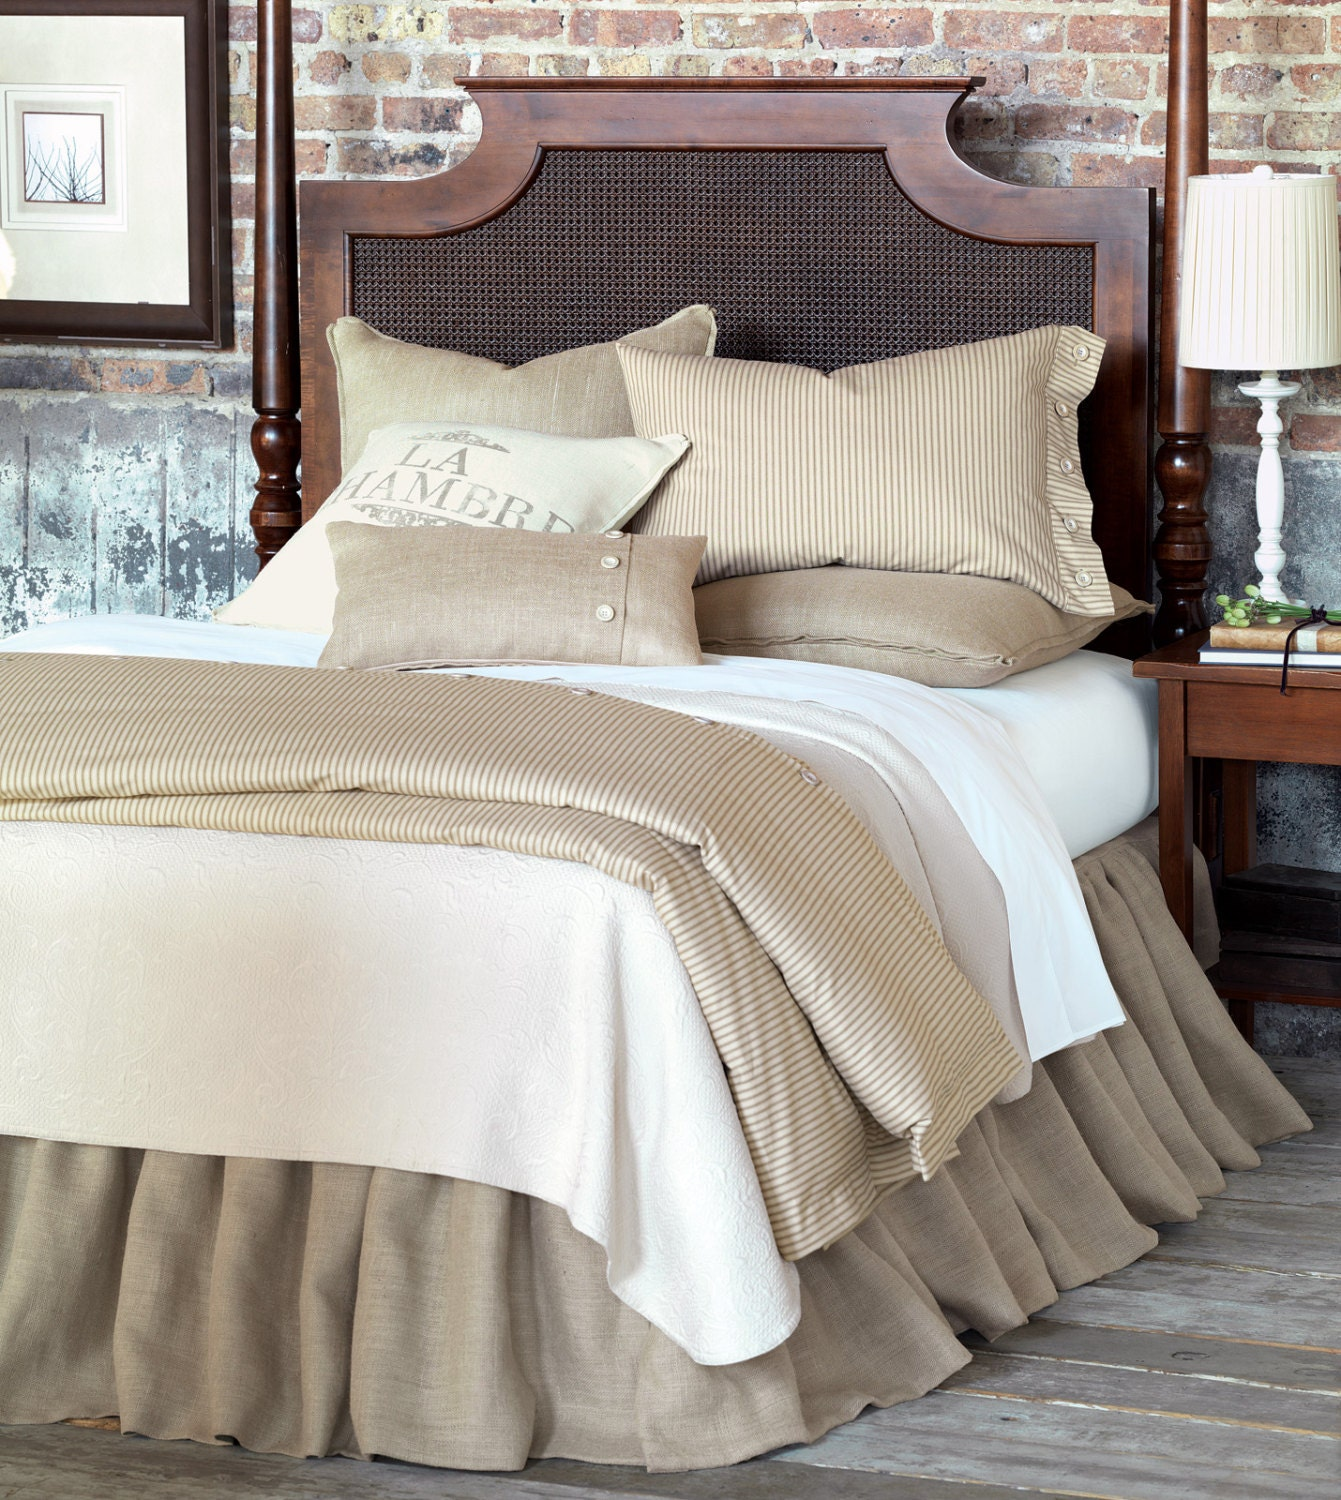 king bed skirt linen bed skirt king size 76 x 80 193 x 203 cm 980